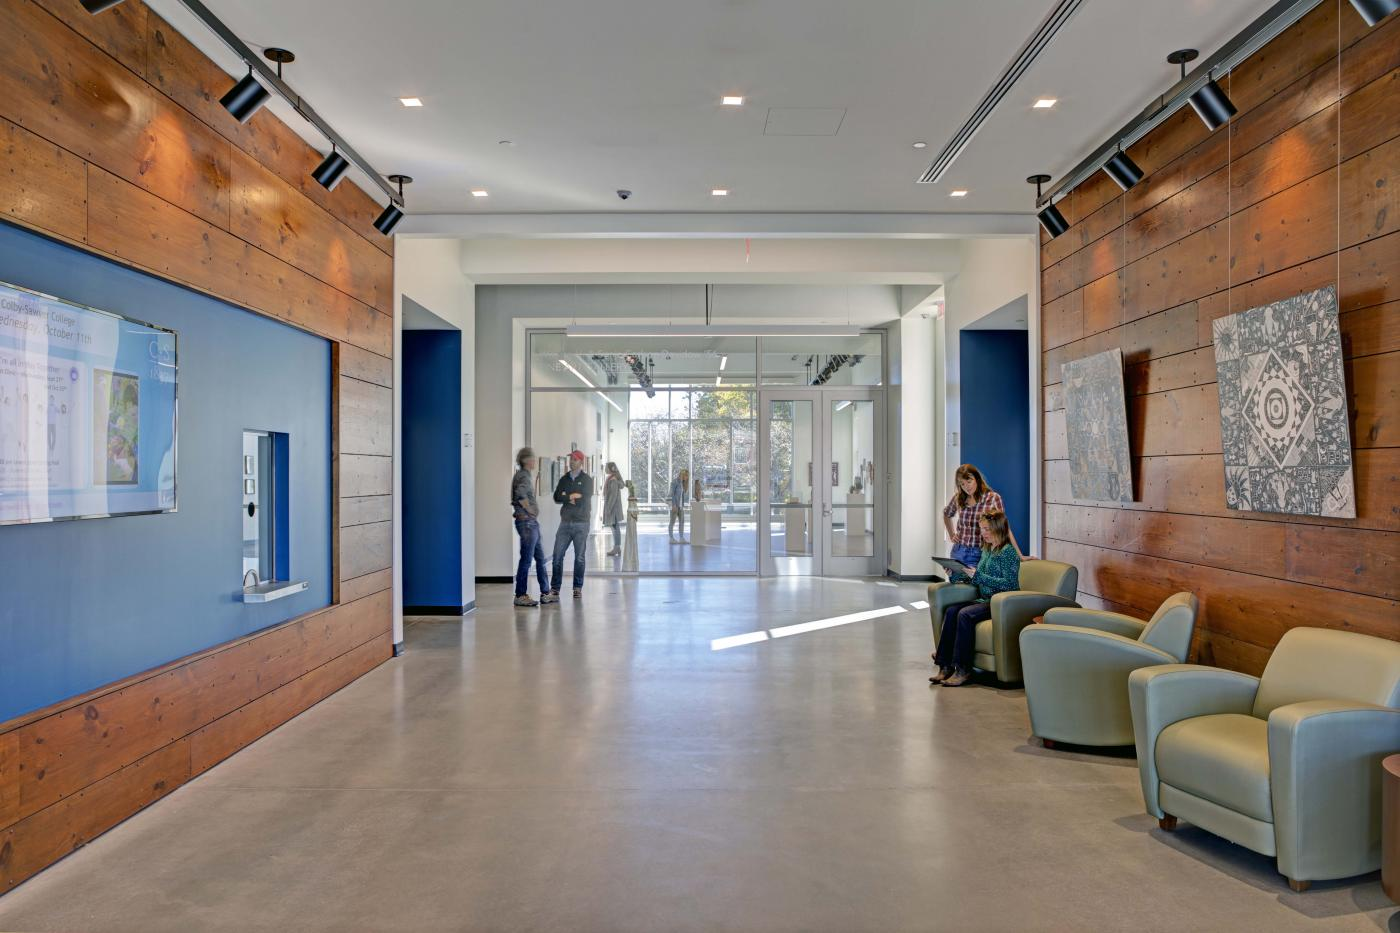 Colby-Sawyer College Center for Art + Design